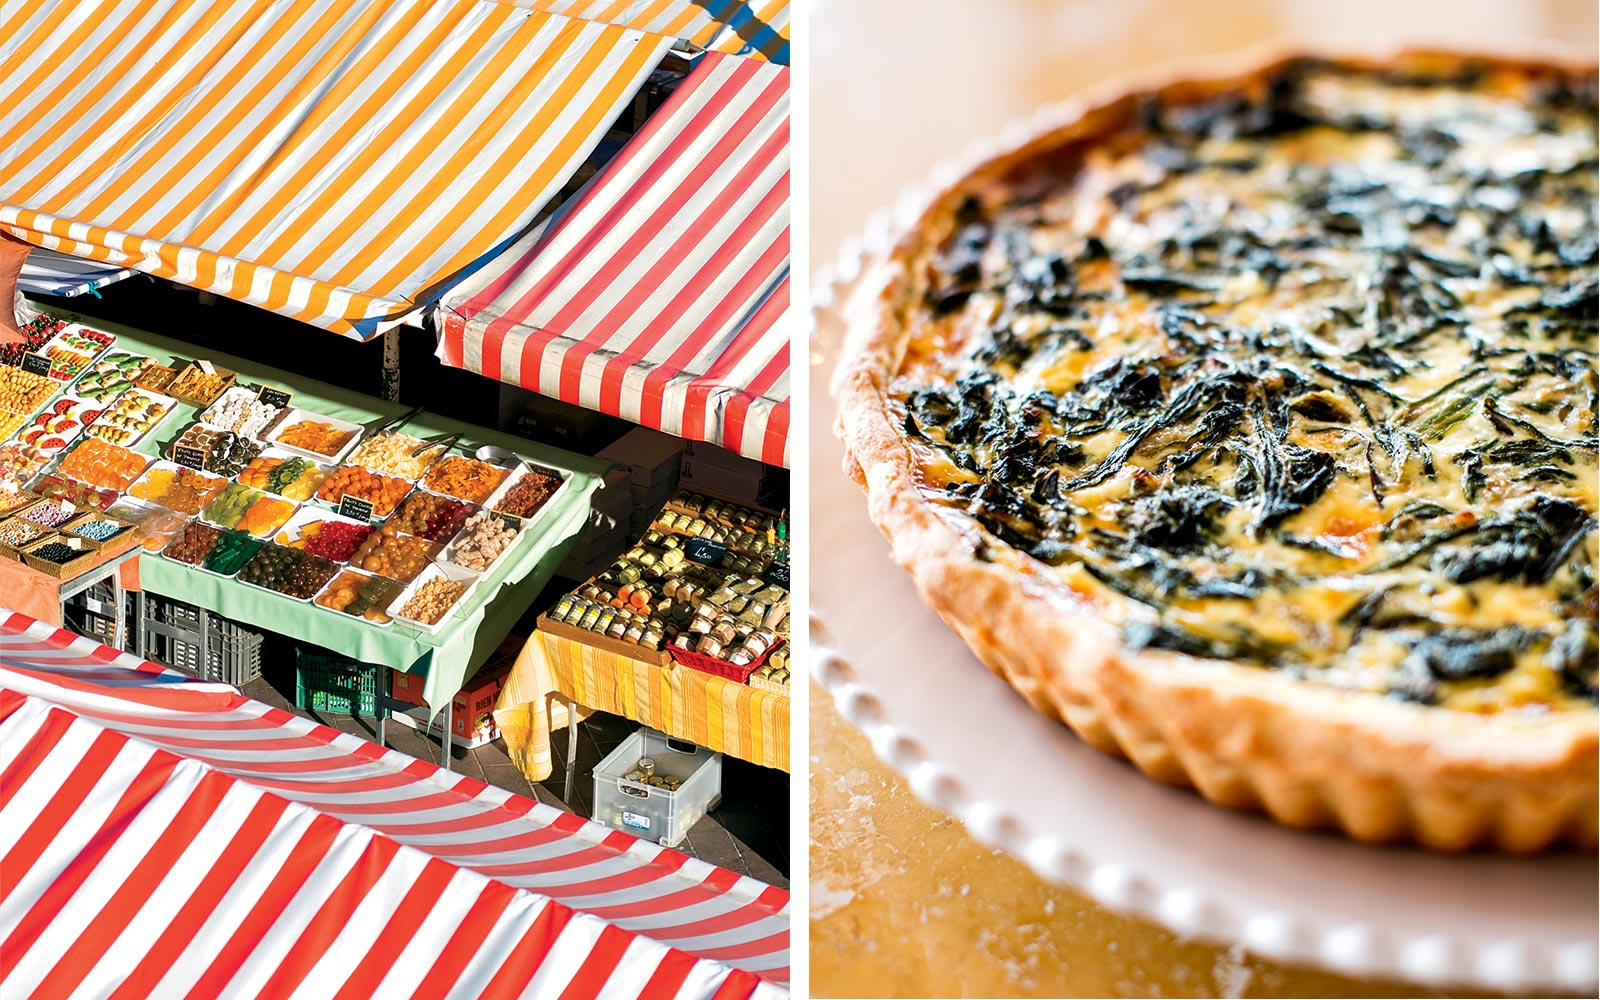 Colorful awnings at the Cours Saleya Market in Nice; a quiche made from local ingredients at Les Roches Rouges